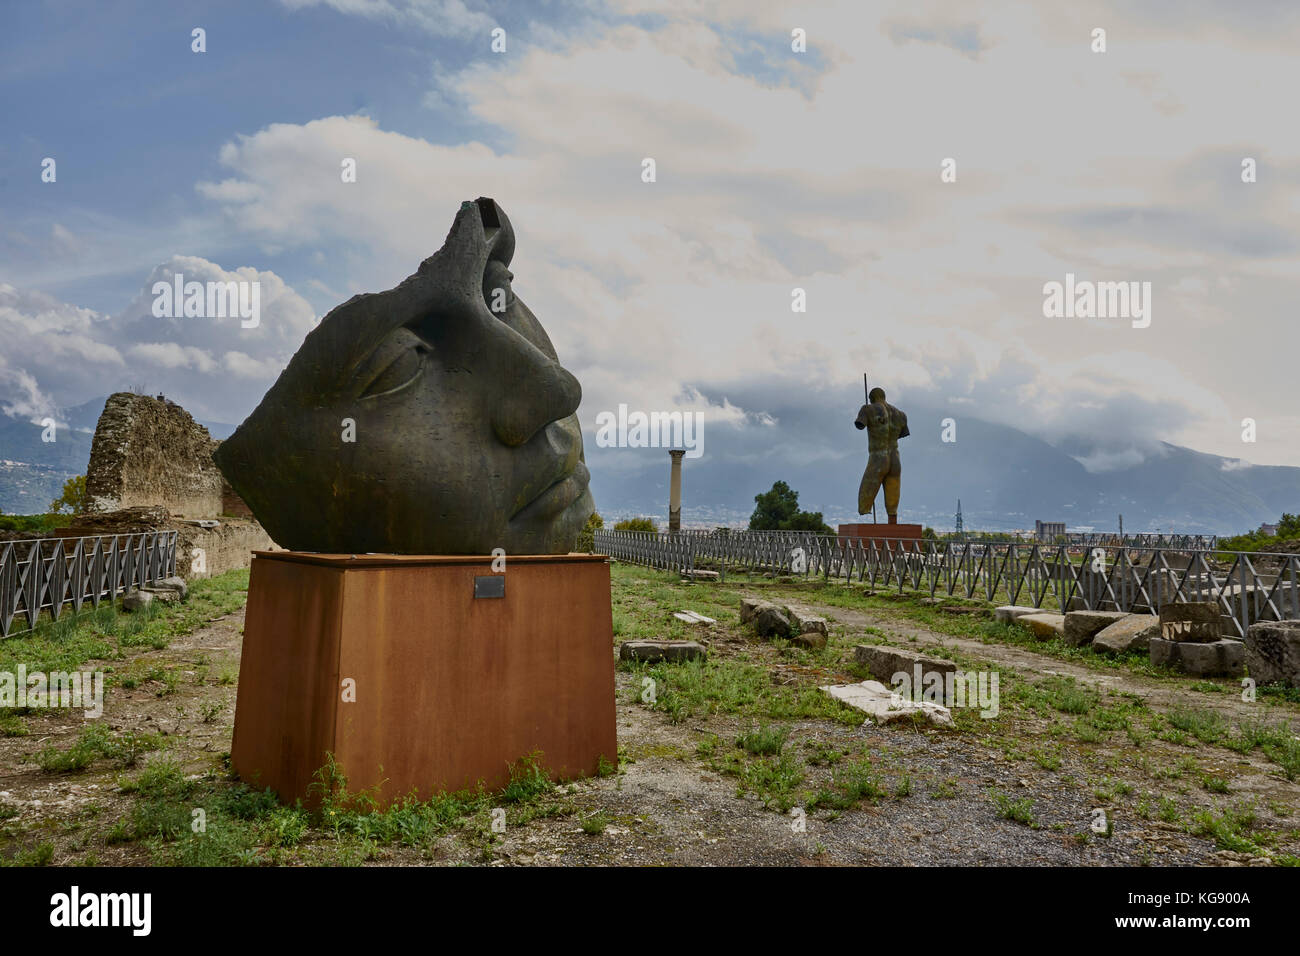 "Pompeii ruins exhibited after archaeological excavations. Modern sculptures by Igor Mitoraj. Bronze head ""Luci di Stock Photo"